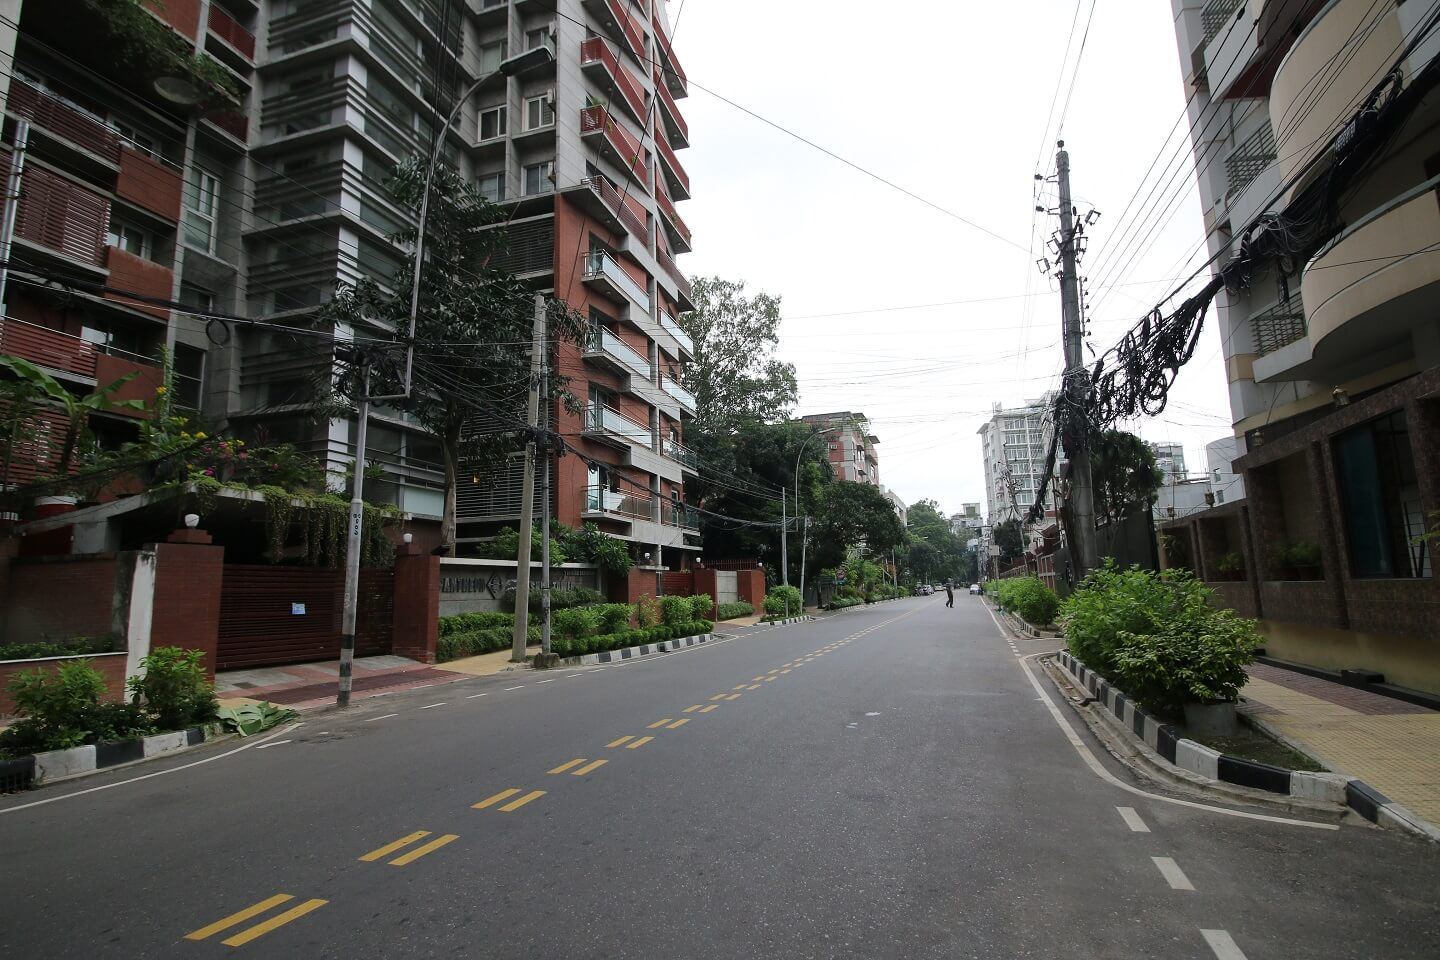 The area restriction makes Baridhara one of the best places for expats in Dhaka